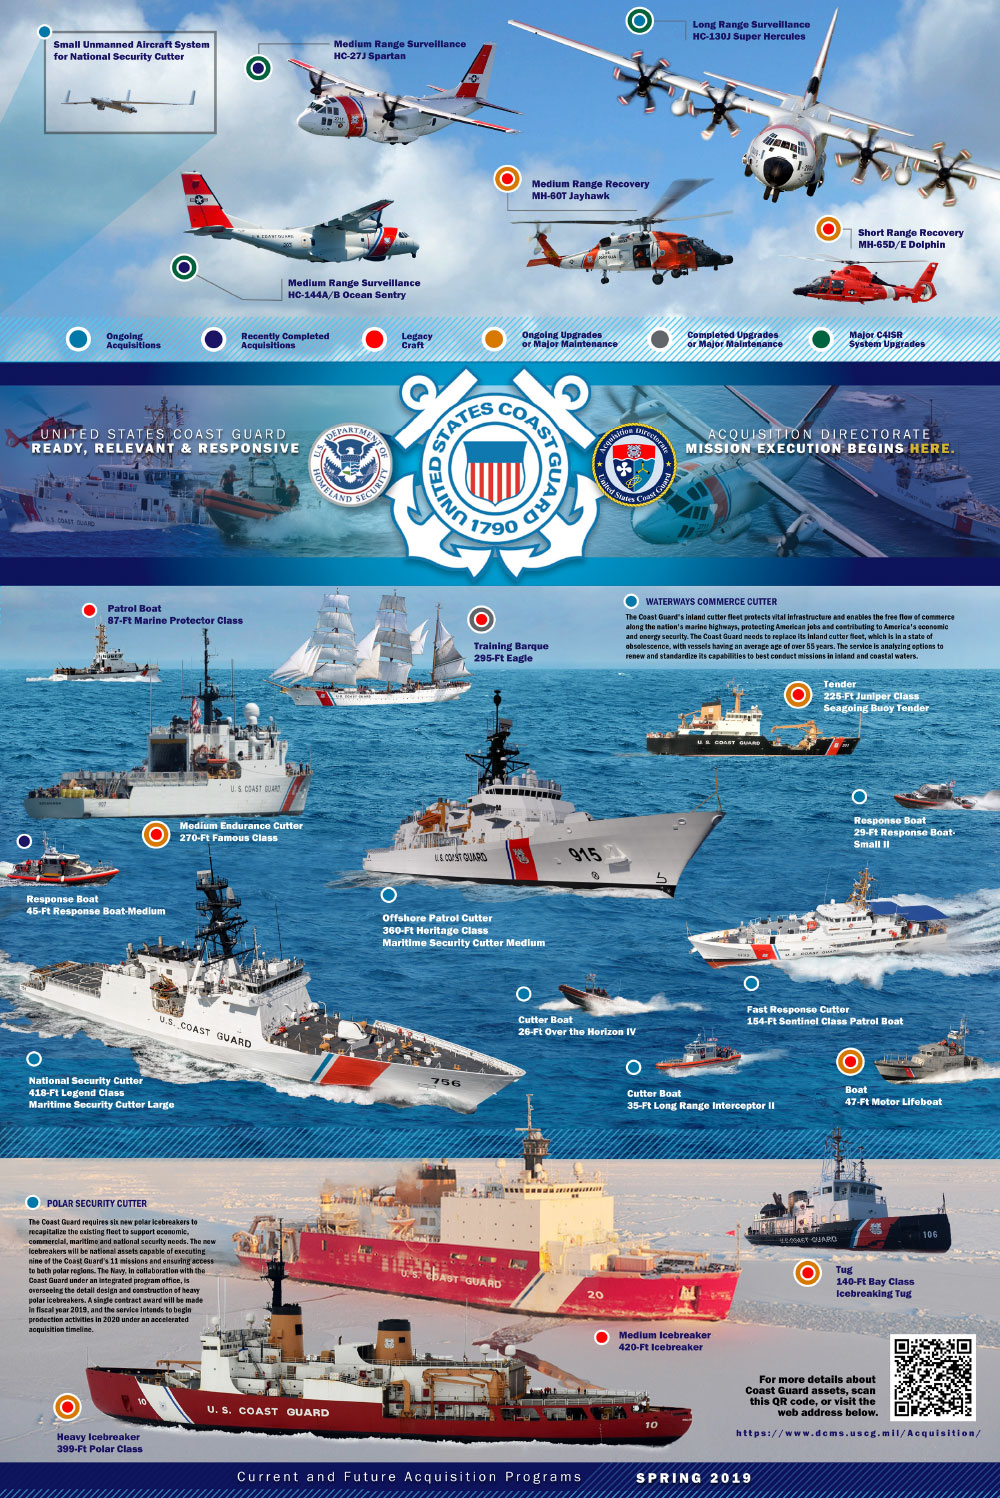 United States Coast Guard current and future acquisition programs